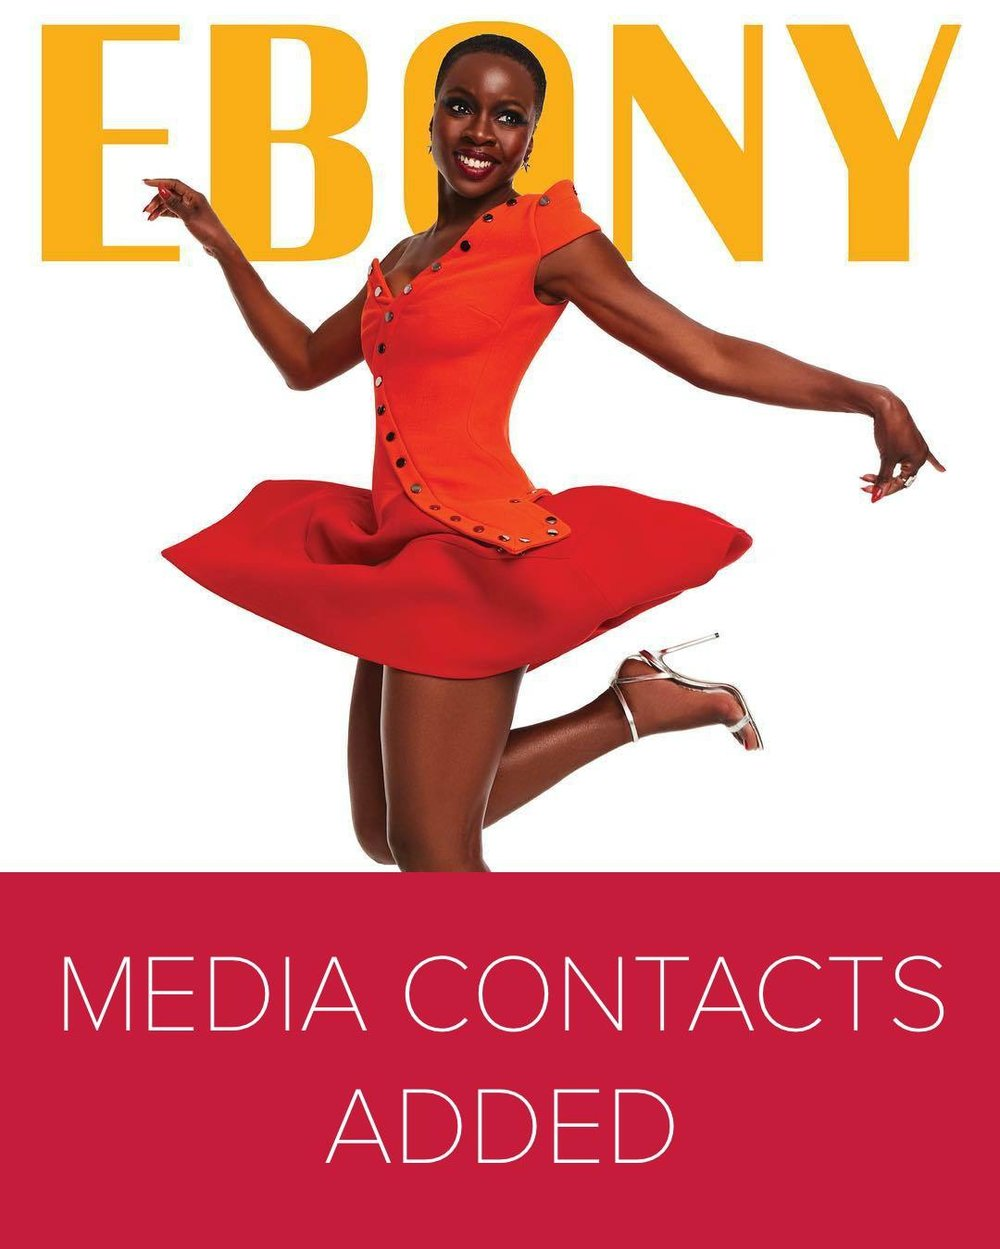 media contacts ebony.jpg